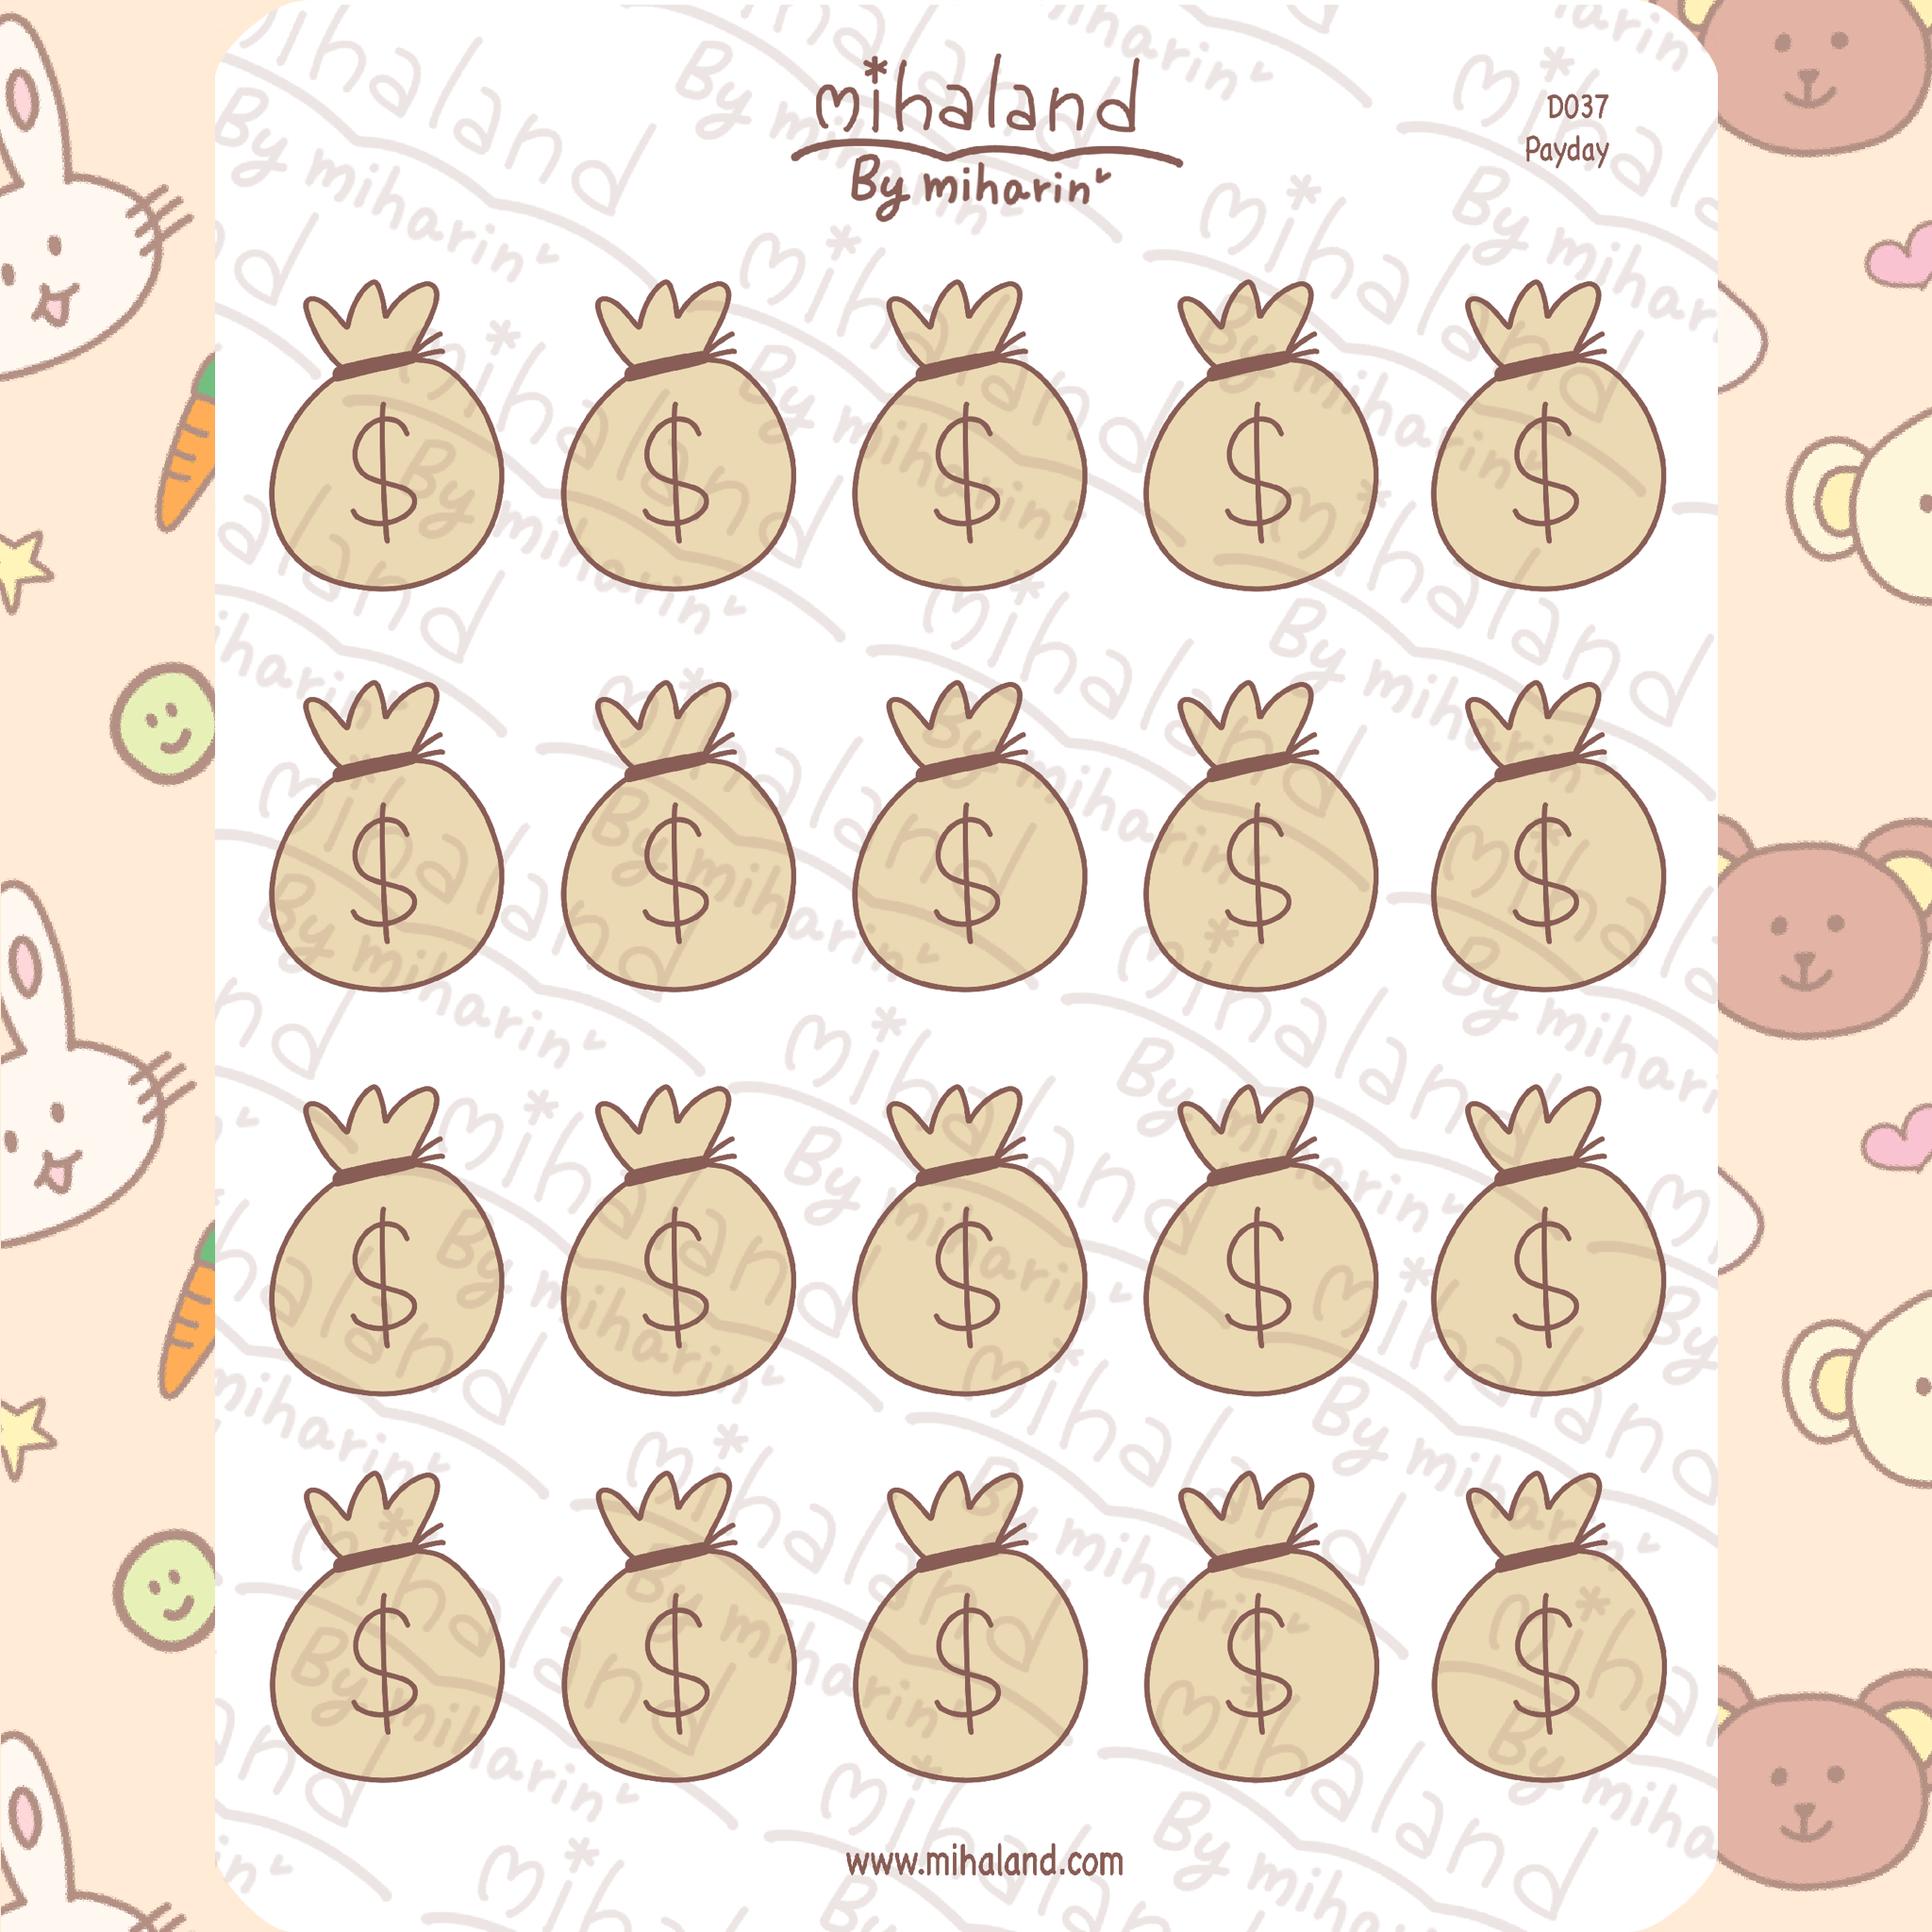 mihaland - Payday Planner Stickers (D037)